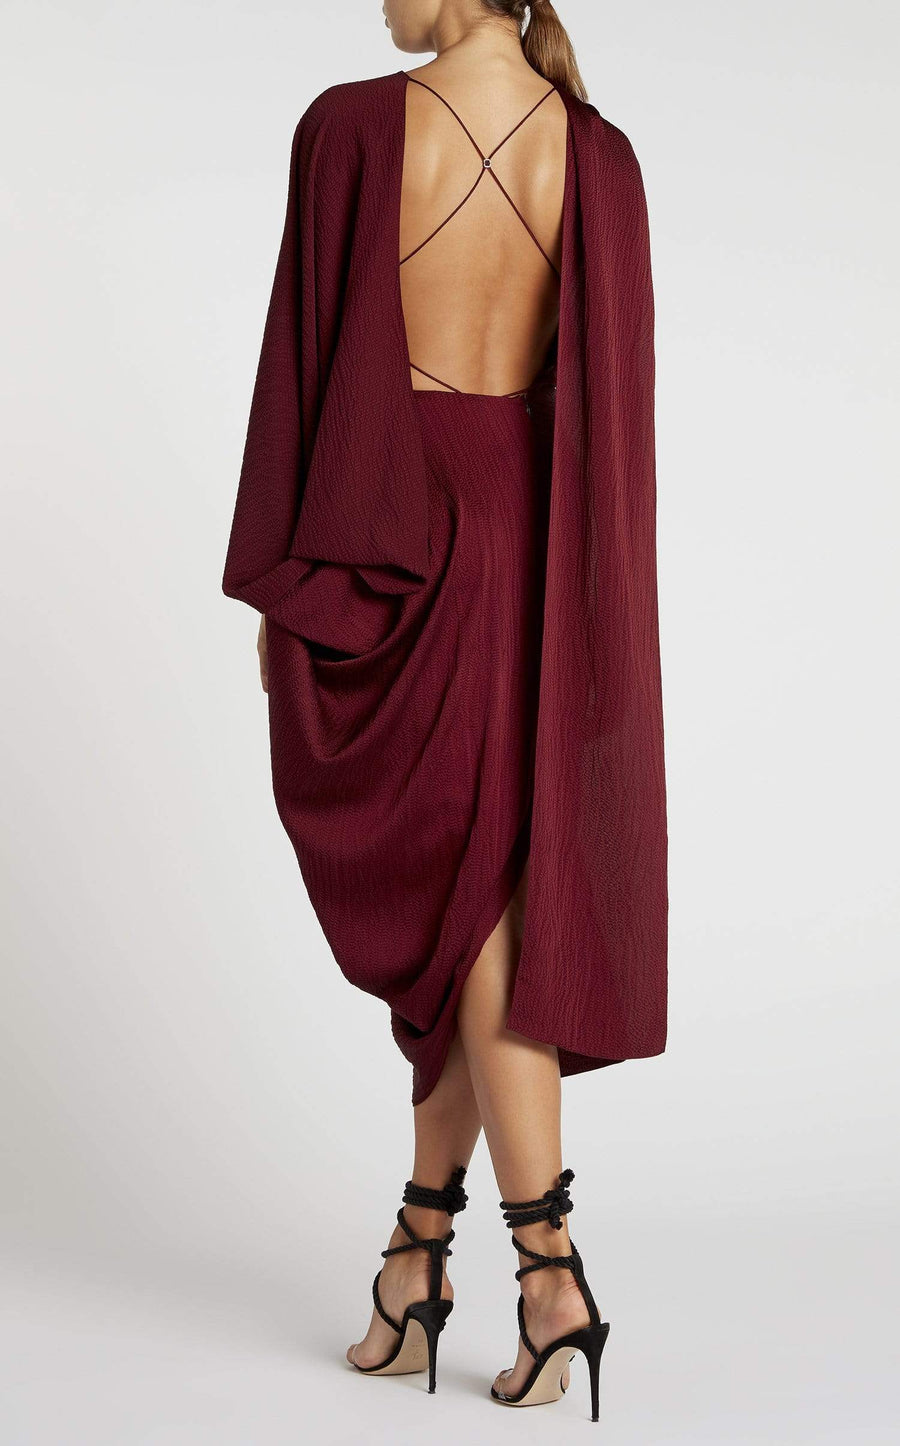 Lillico Dress In Cabernet from Roland Mouret